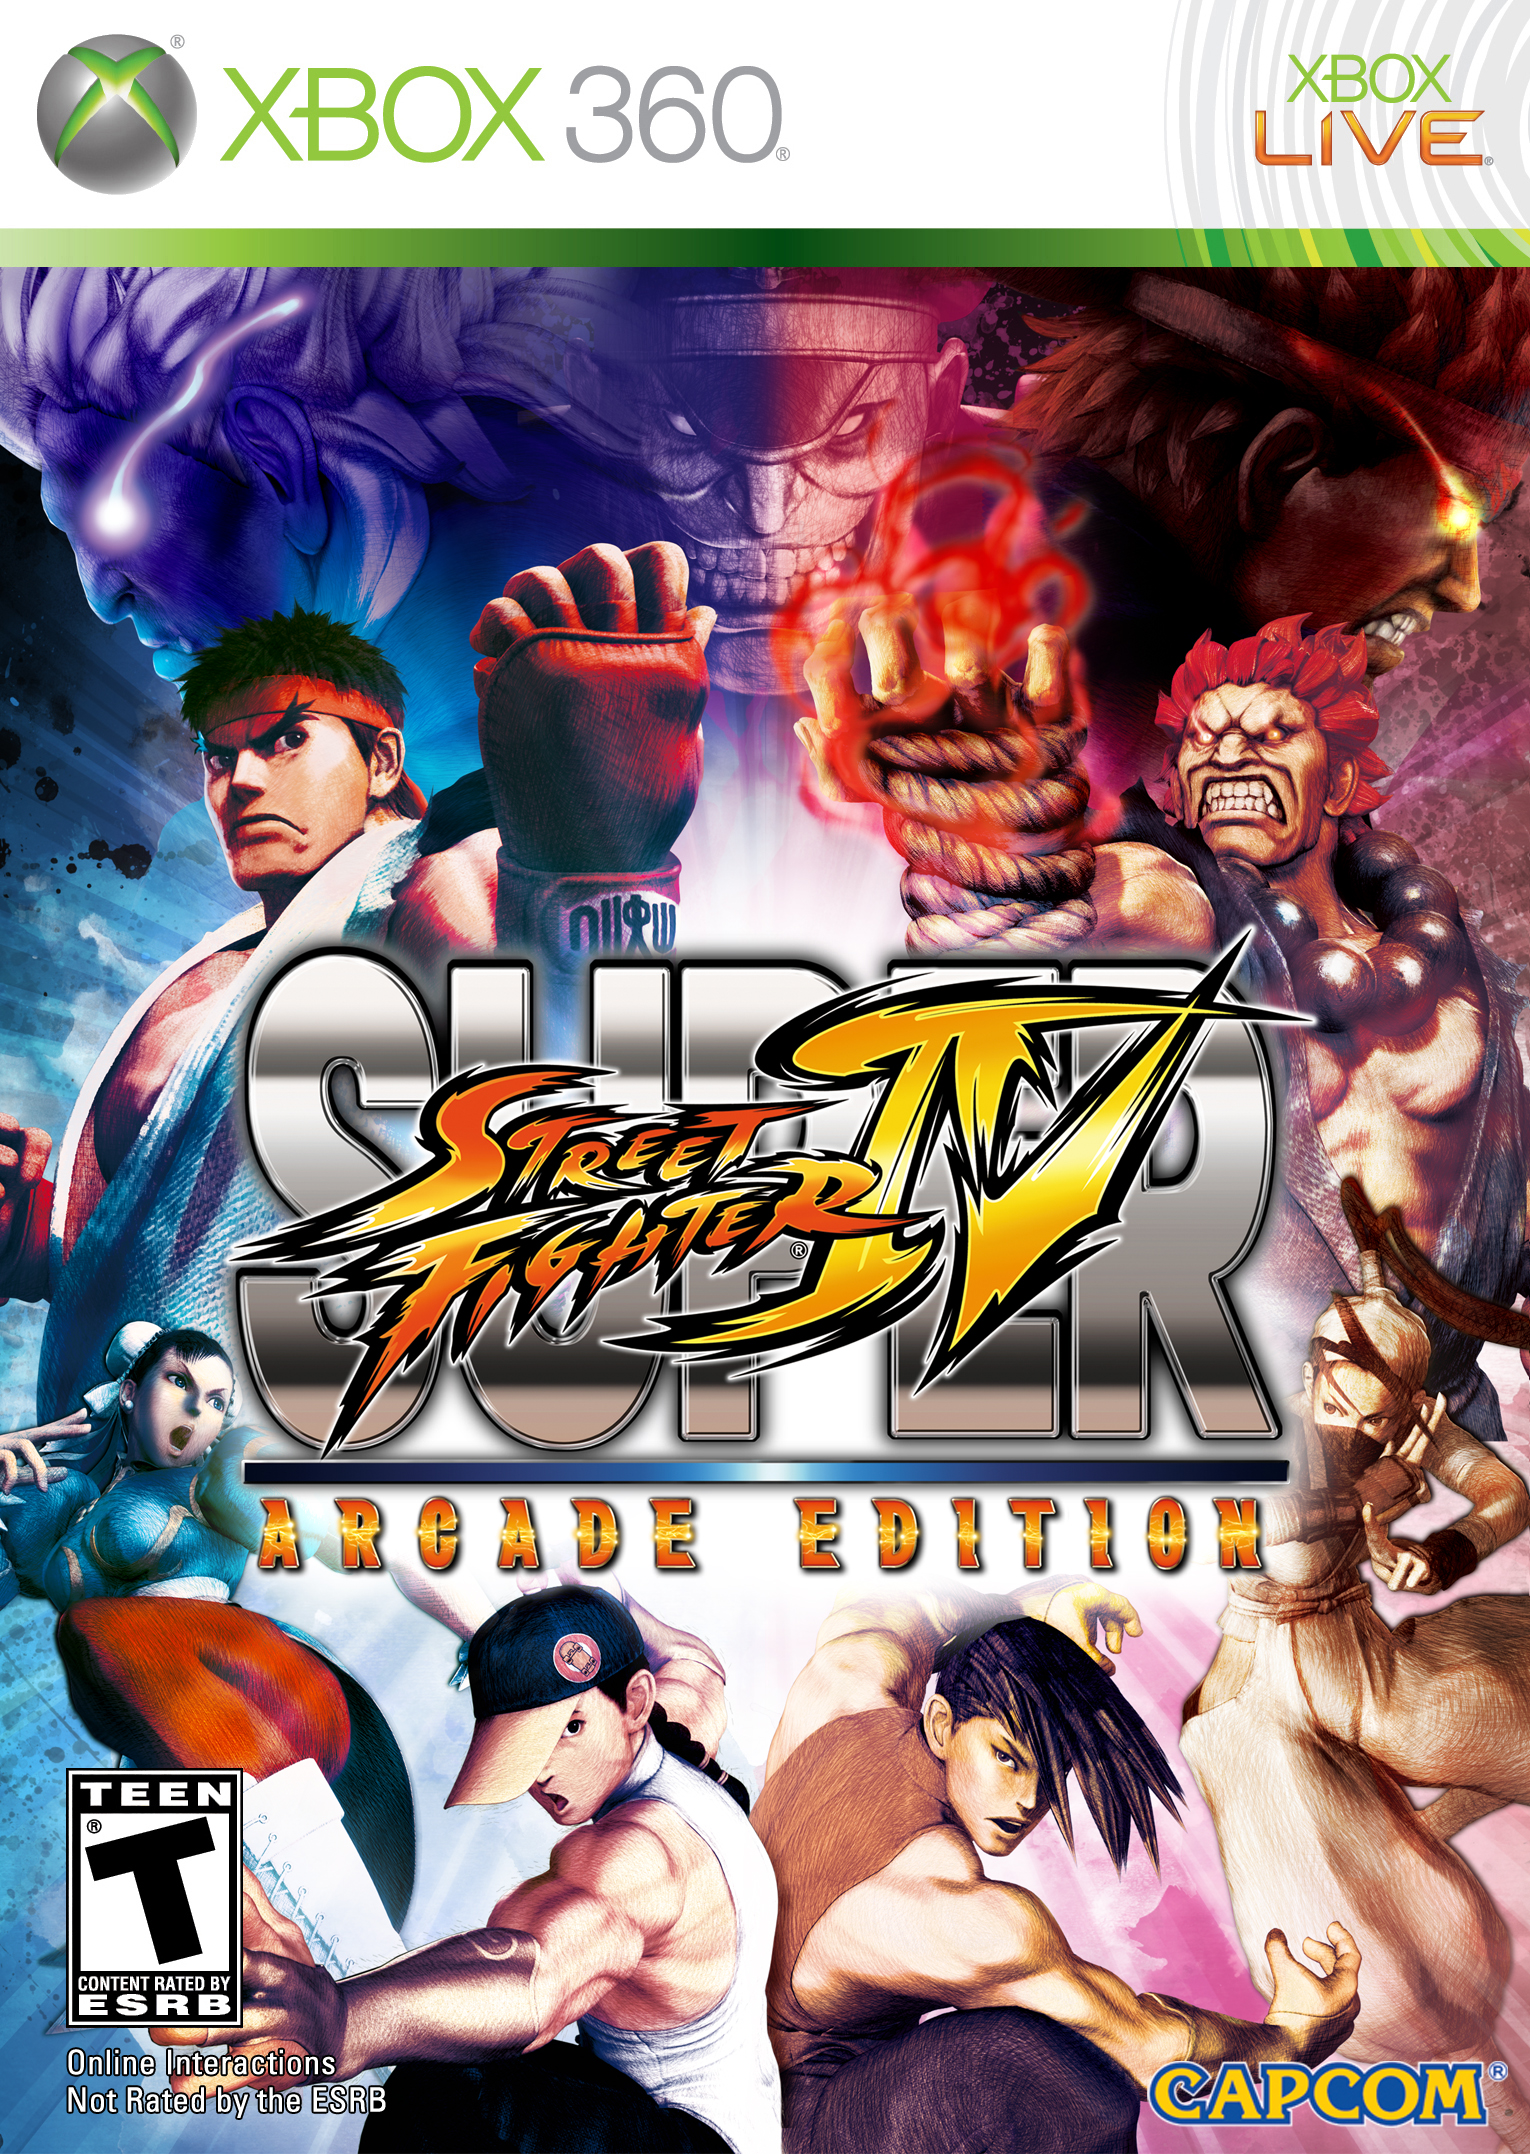 Super street fighter iv arcade edition nude  sex image